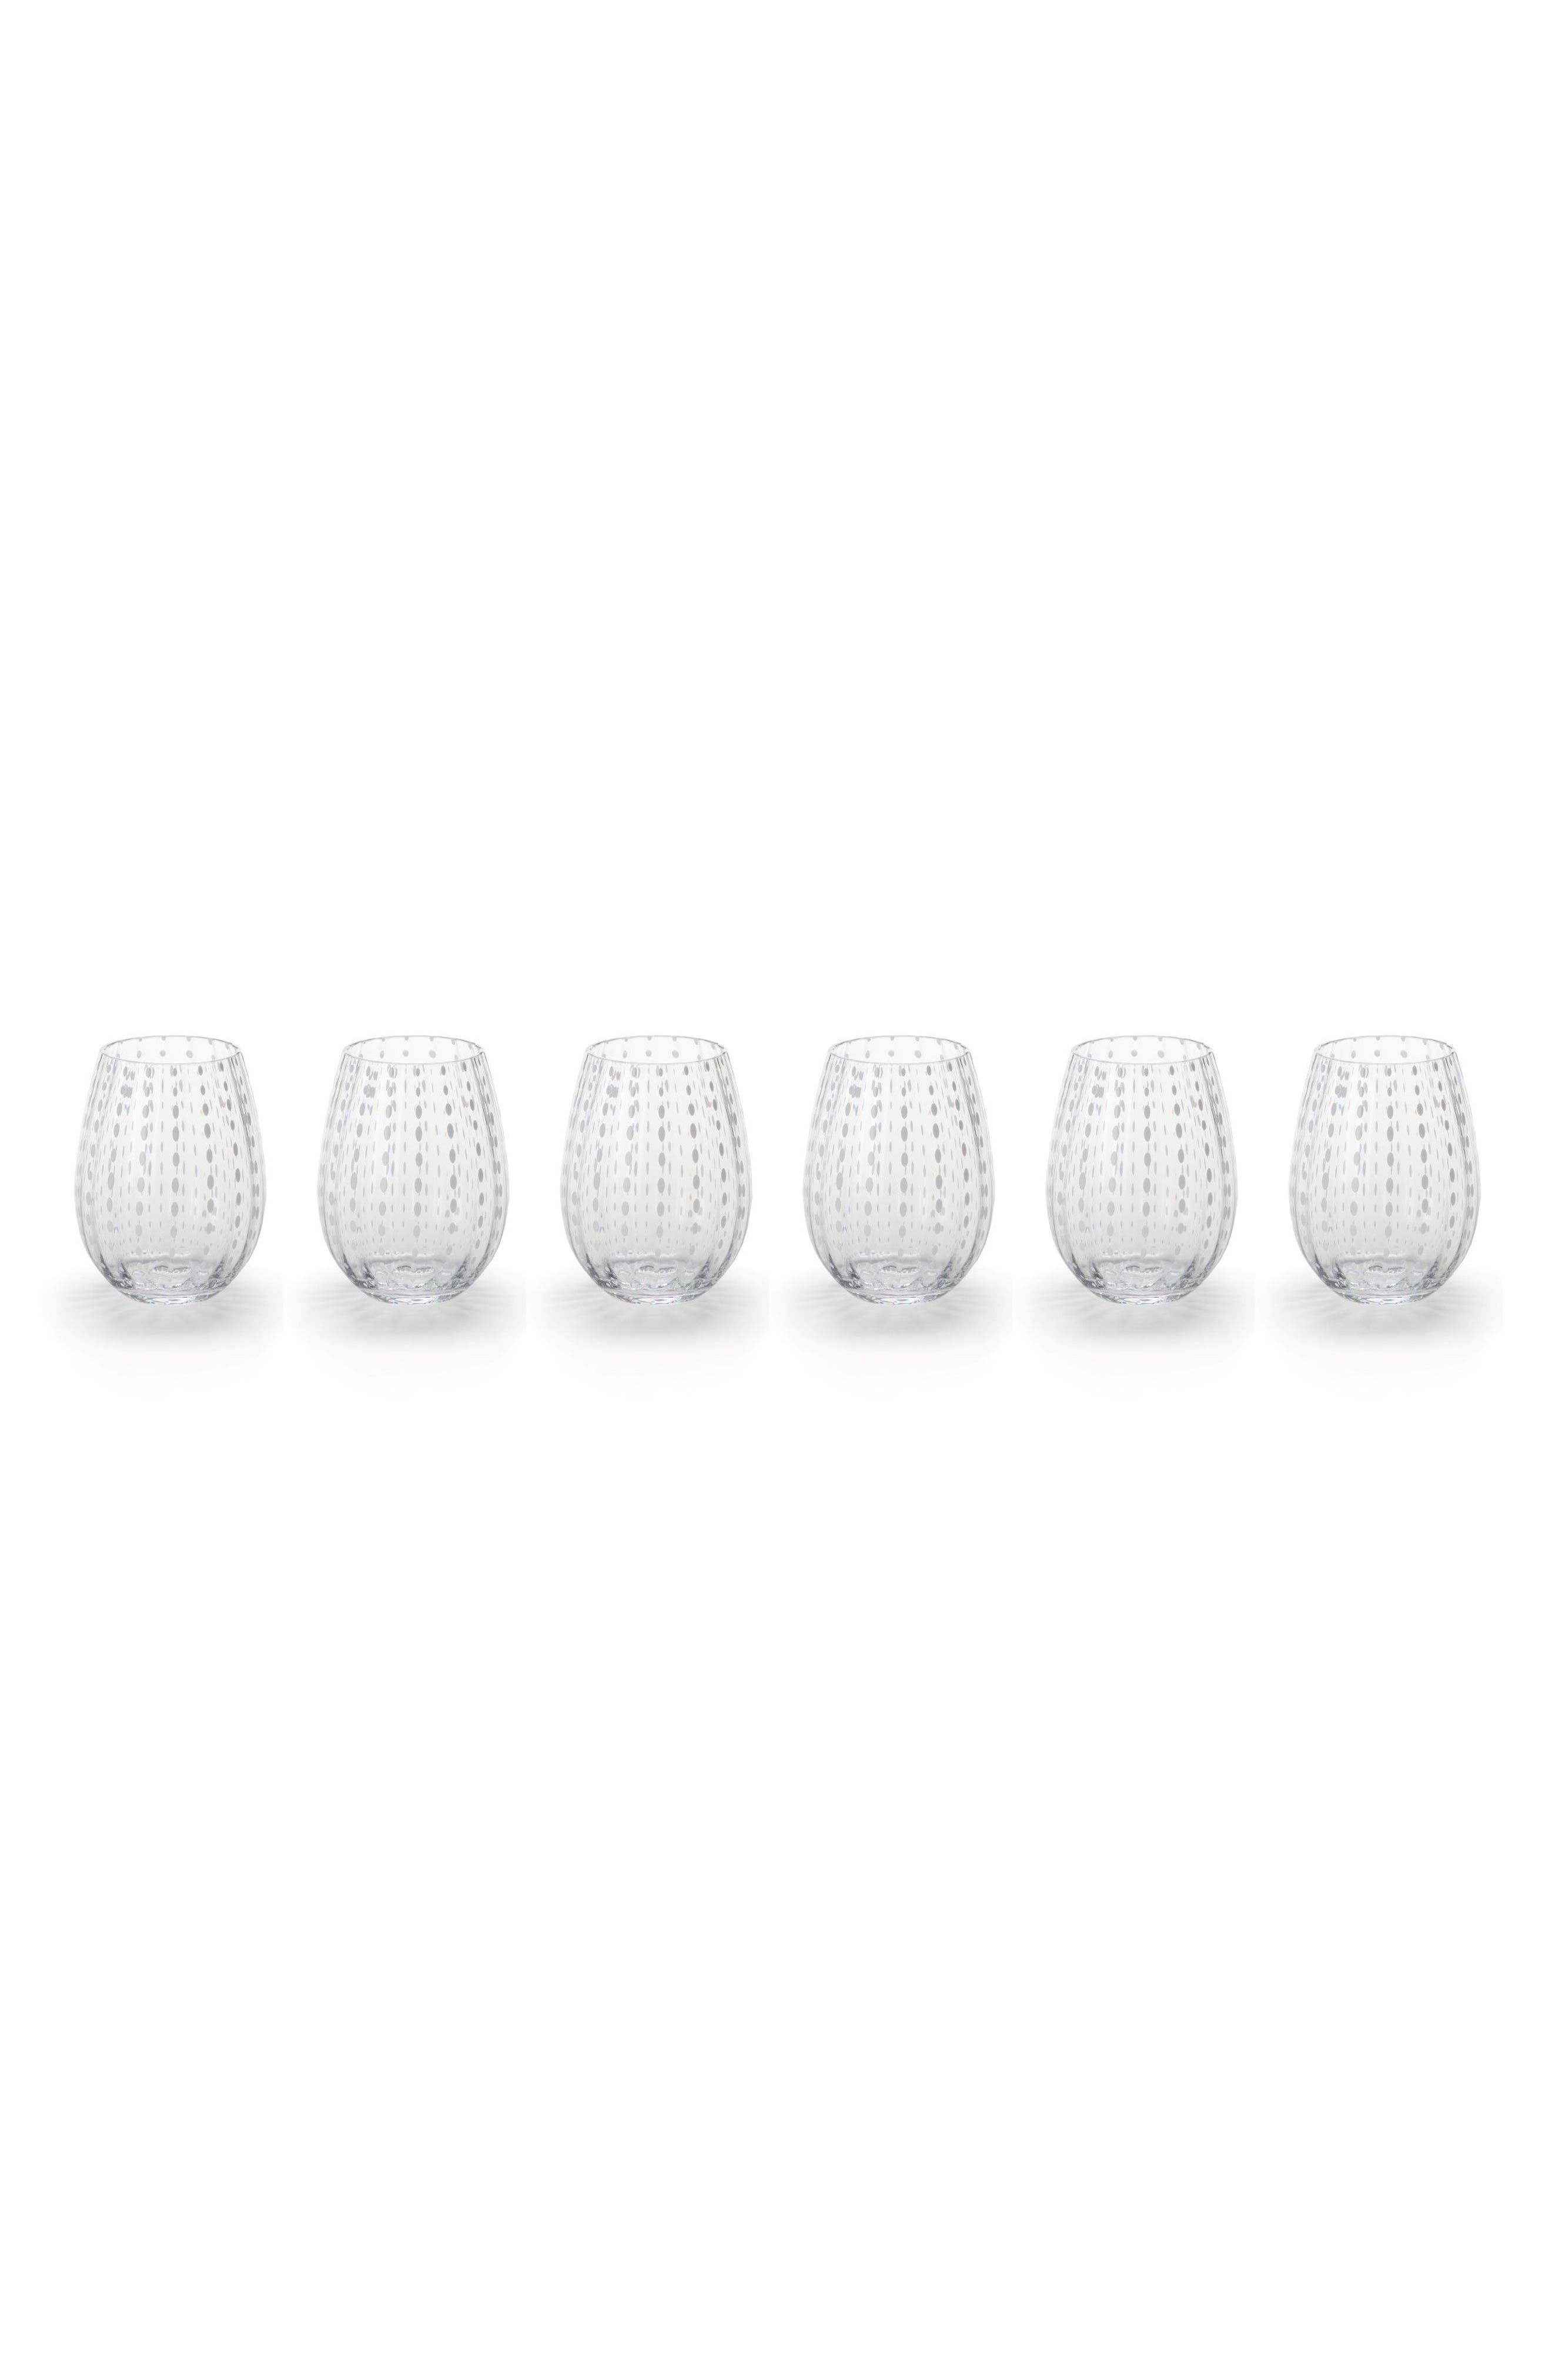 Fintan Set of 6 Stemless Wine Glasses,                         Main,                         color, White